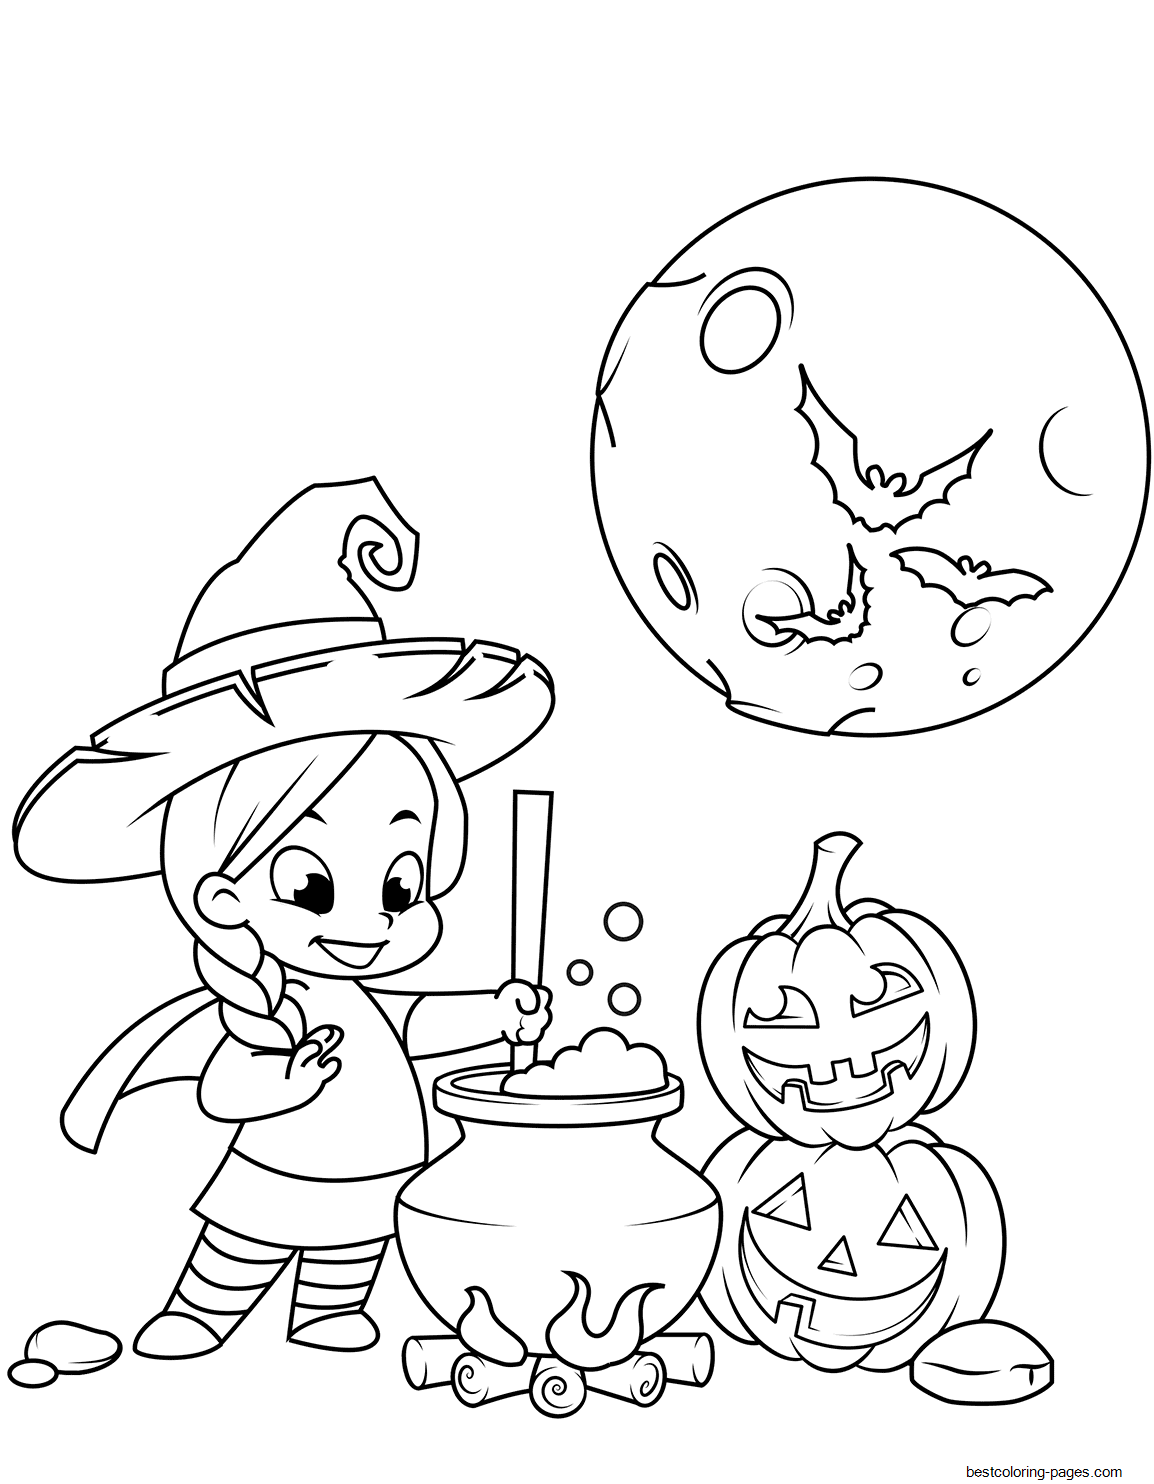 cute halloween coloring pages free halloween coloring pages for kids or for the kid in you cute pages halloween coloring